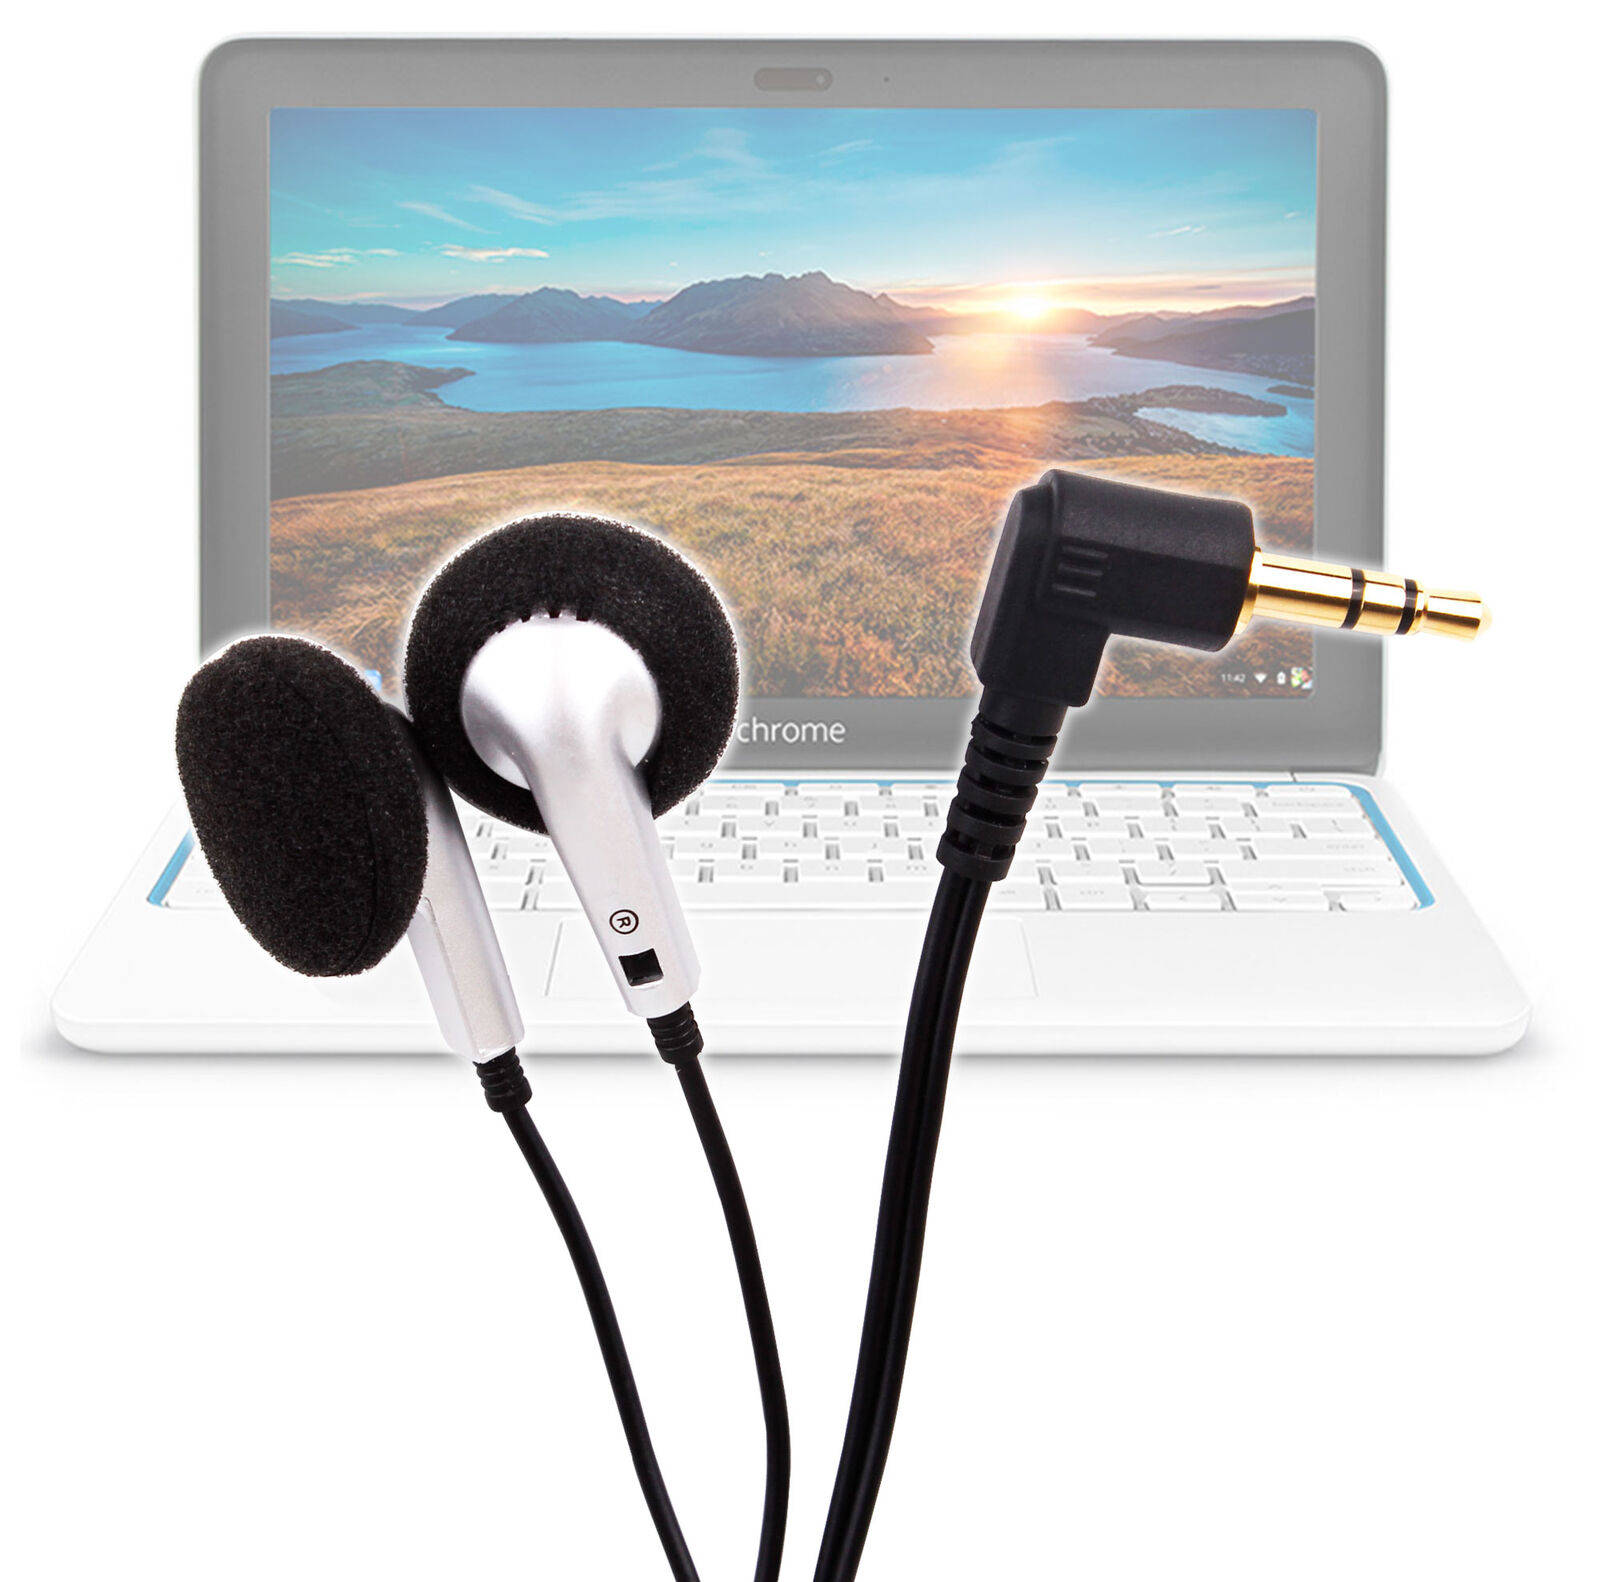 Black & Silver Earphones/Headphones with Premium Audio for H